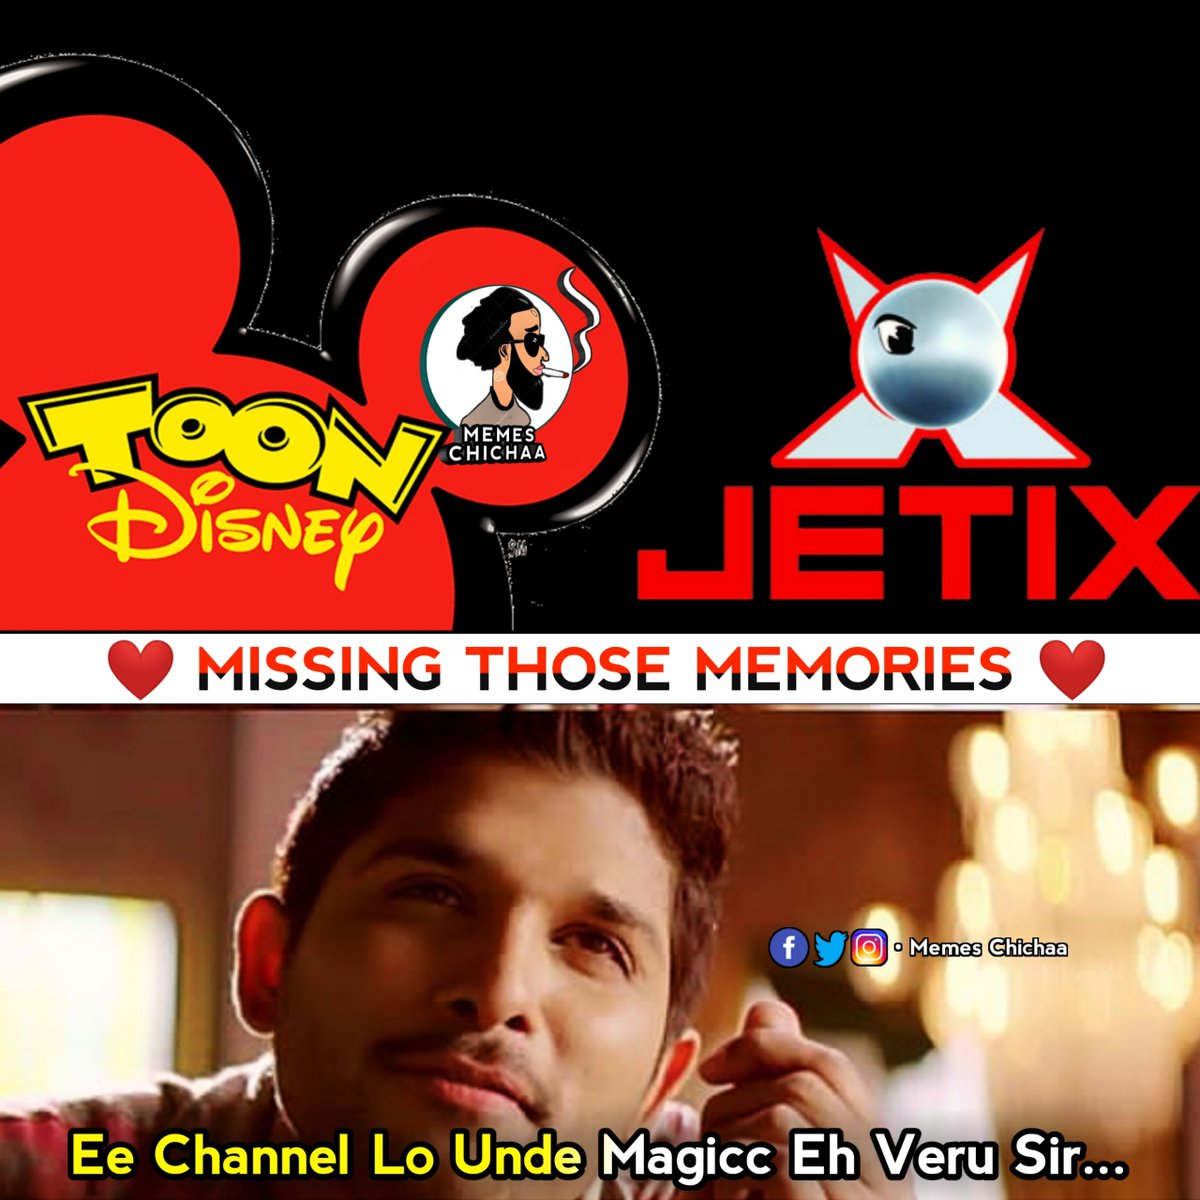 Thank you #Jetix #ToonDisney #ChildhoodMemories #90skids #memes_chichaa pic.twitter.com/Flv6bfGapx